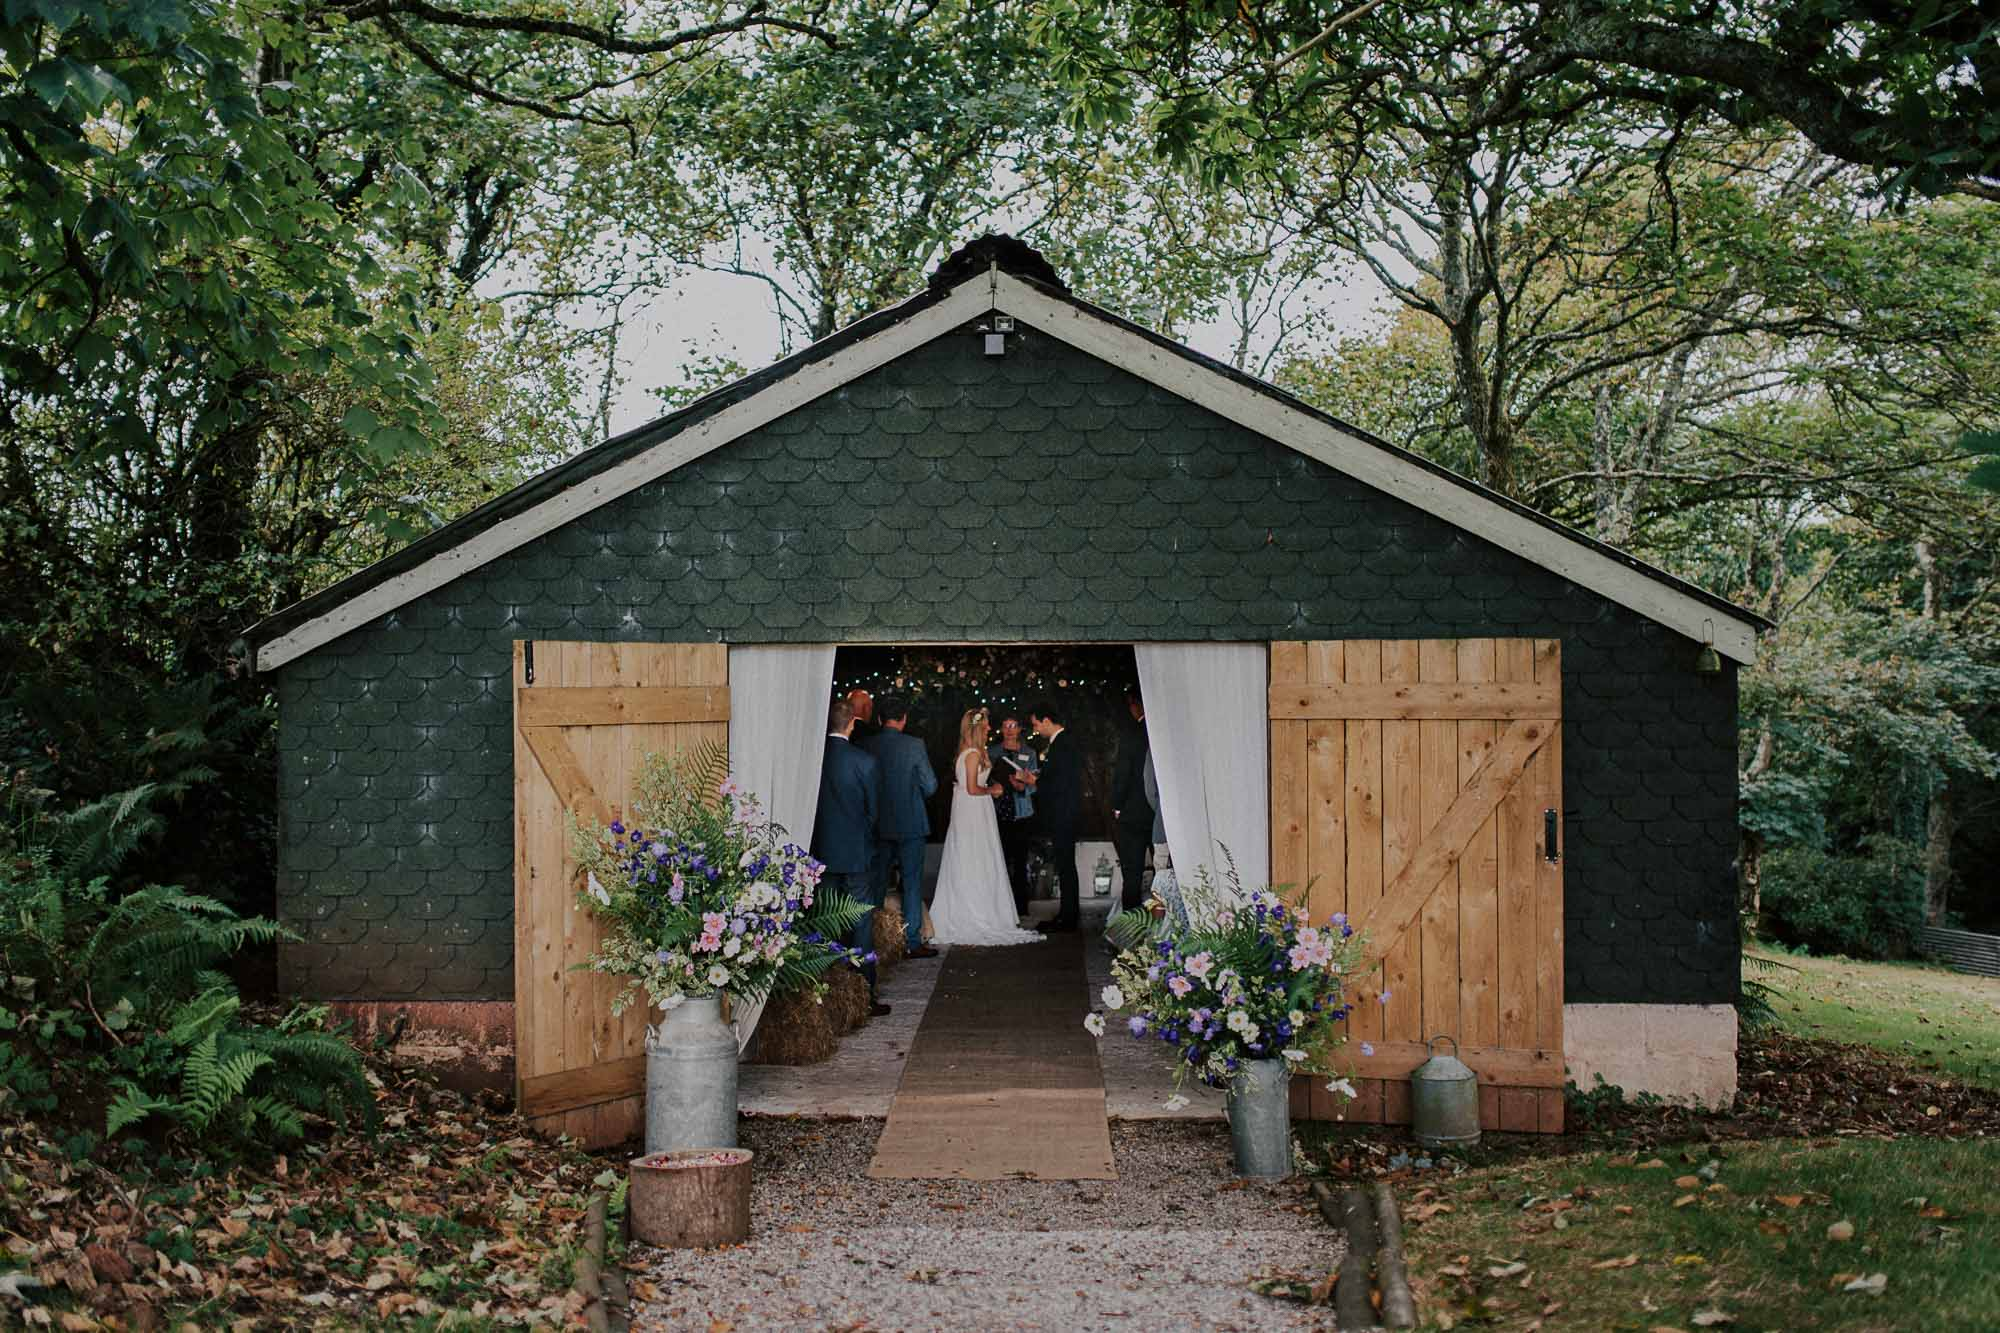 The Cow Shed wedding ceremony barn